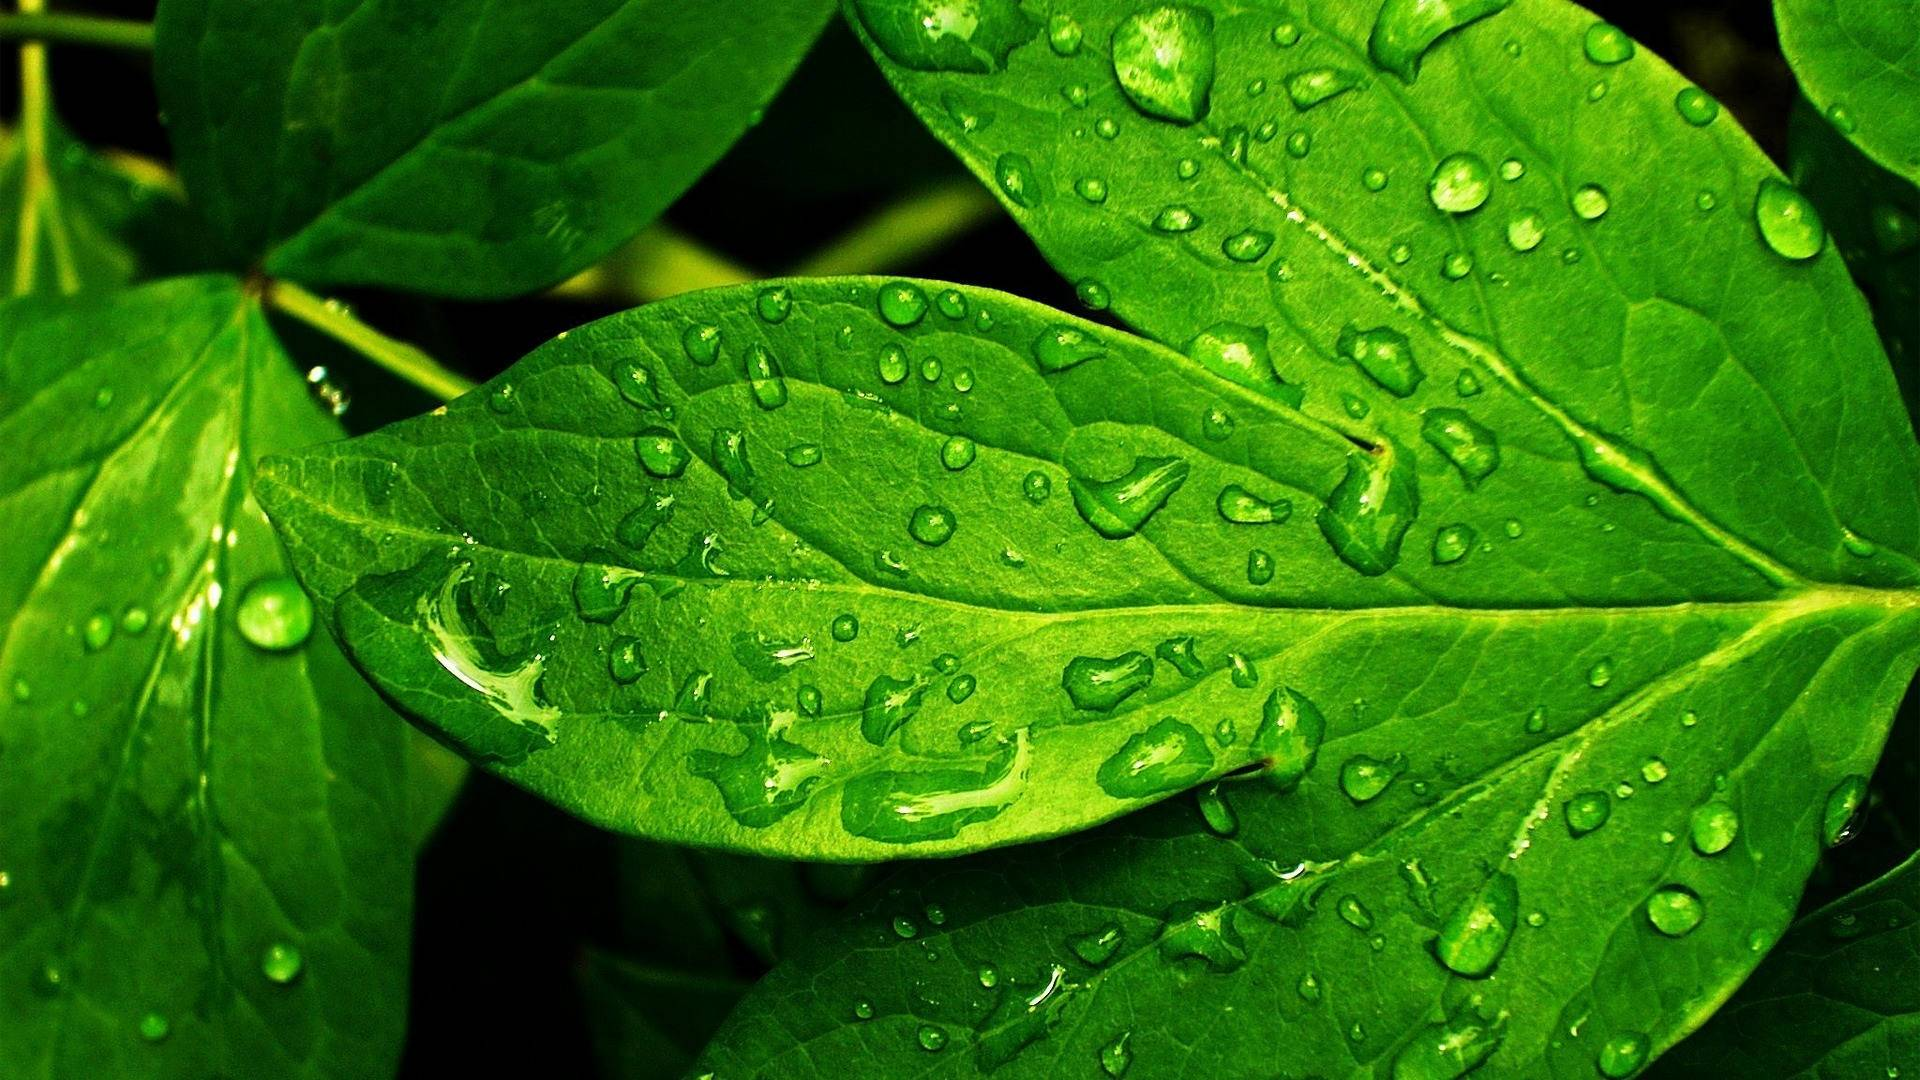 water on leaf wallpaper background